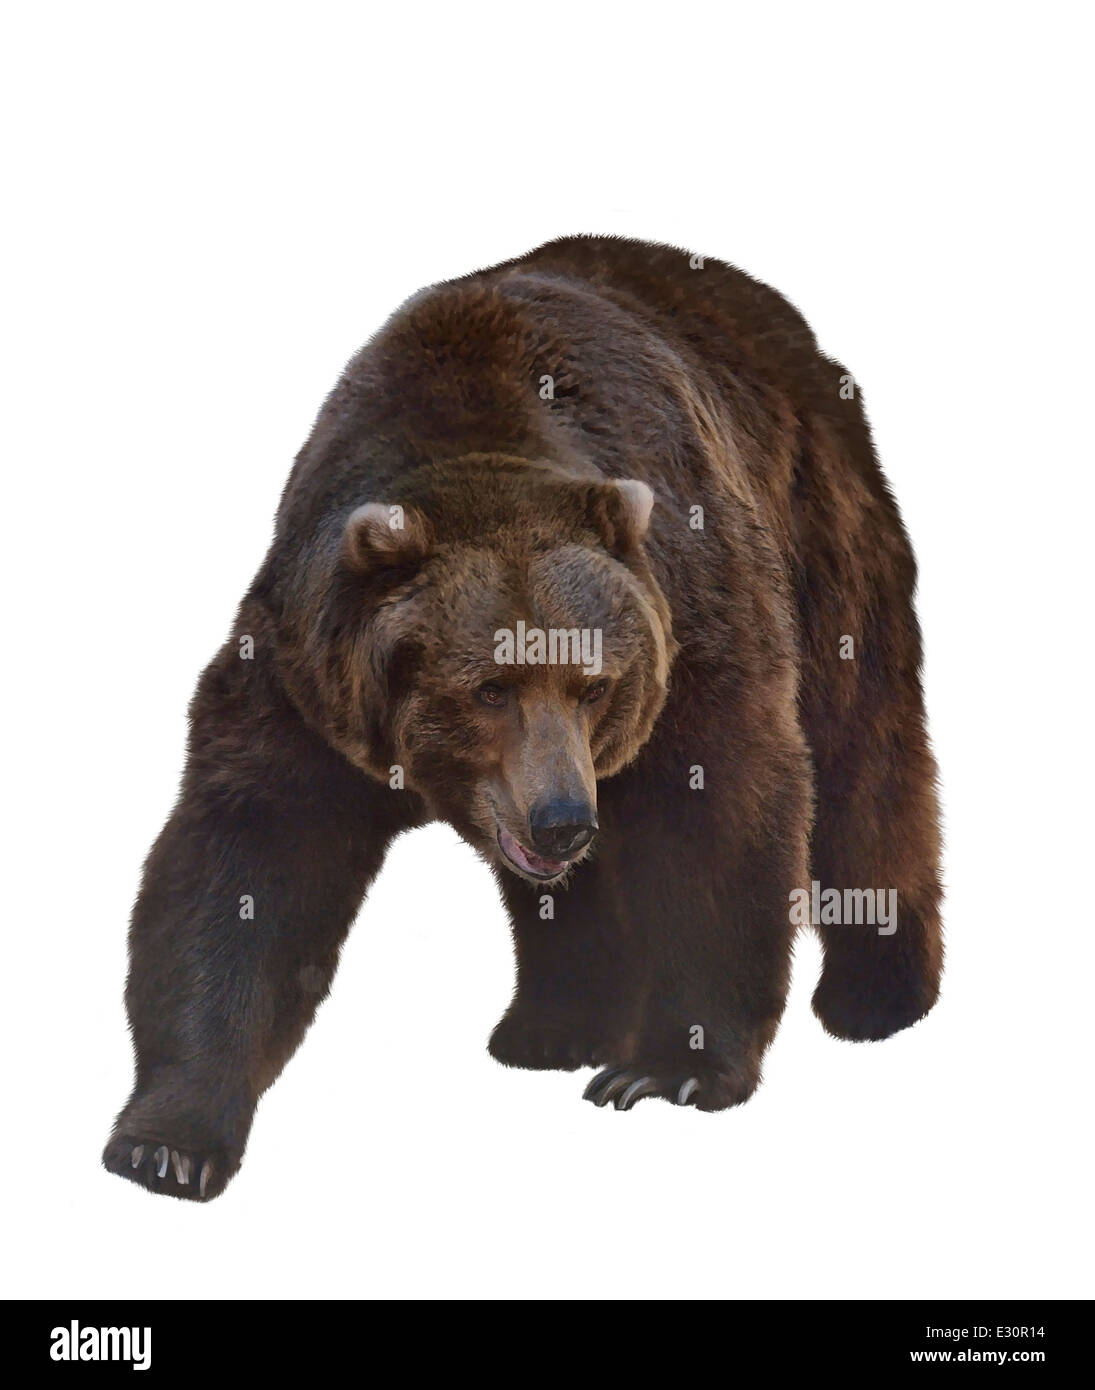 Digitales Aquarell von Grizzly Bear, Isolated On White Background Stockbild